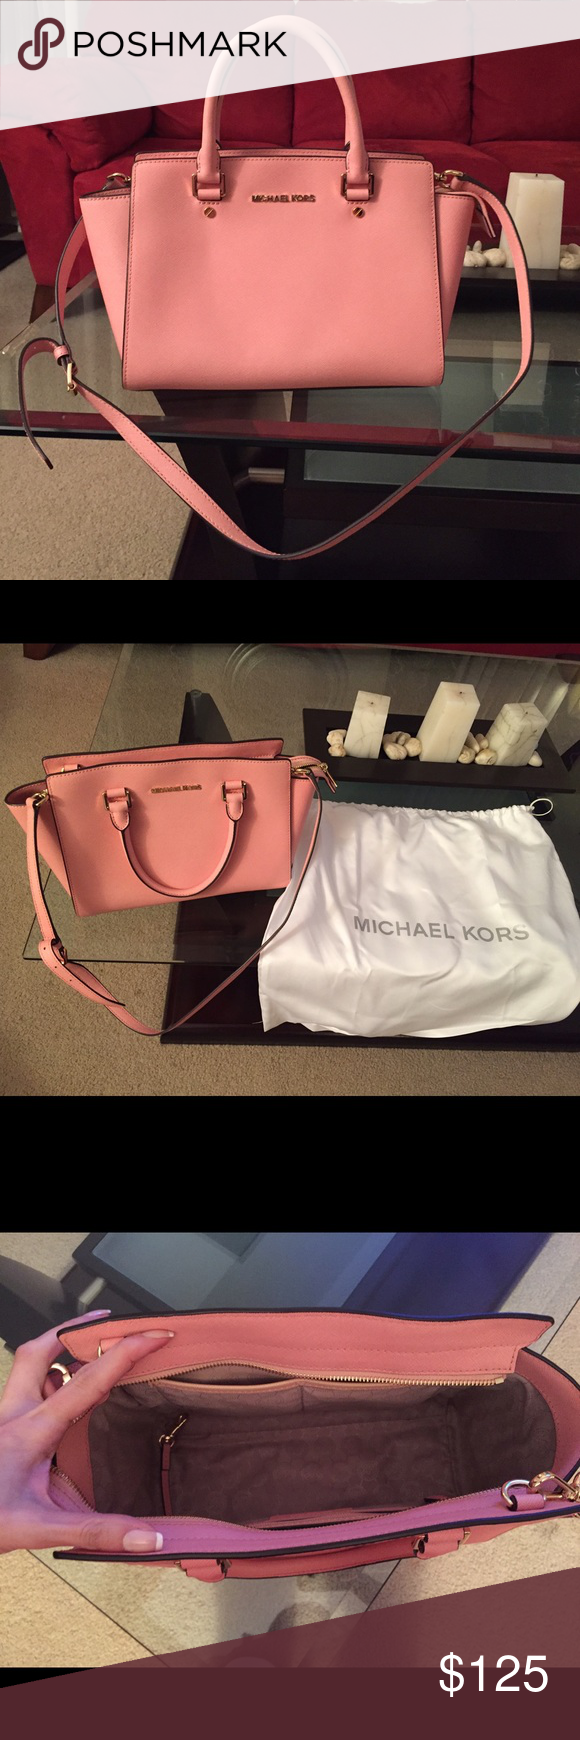 Michael Kors SELMA SAFFIANO LEATHER MEDIUM SATCHEL This bag is in excellent  condition 520360c5d65a9